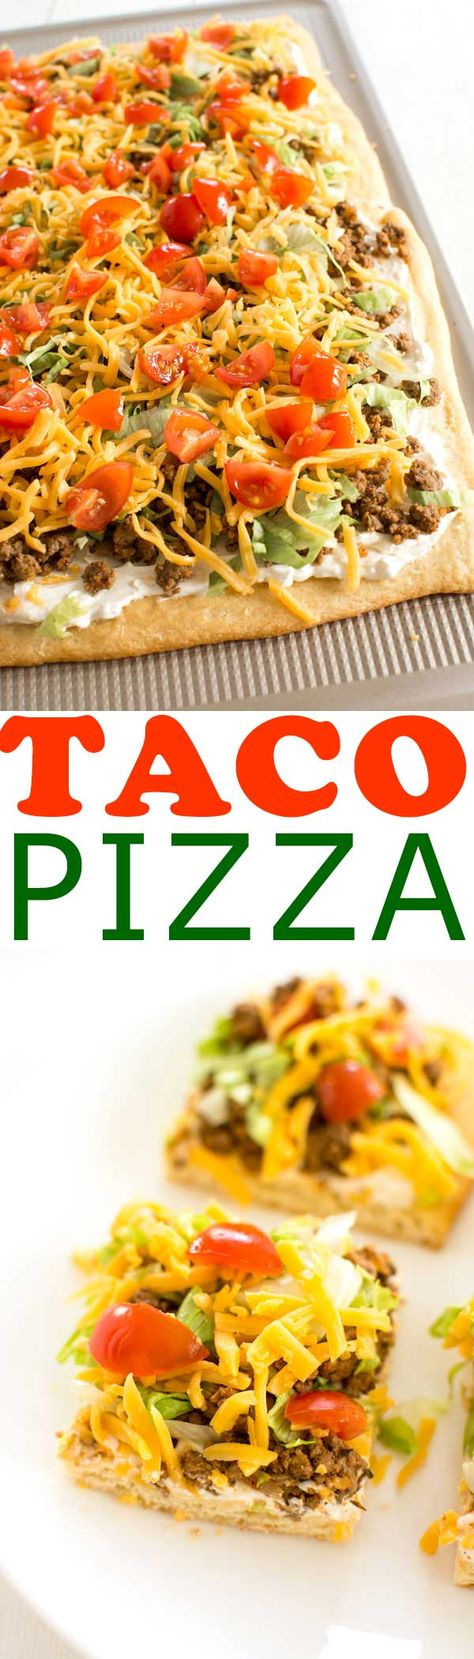 Taco Pizza Appetizer with a crescent roll crust. Easy cream cheese sauce is so zesty! #taco #pizza #tacotuesday #recipes #recipe #recipeideas #easyrecipe #food #foodgawker #foodblog #recipeoftheday #appetizer #cheese #partyfood #dinner